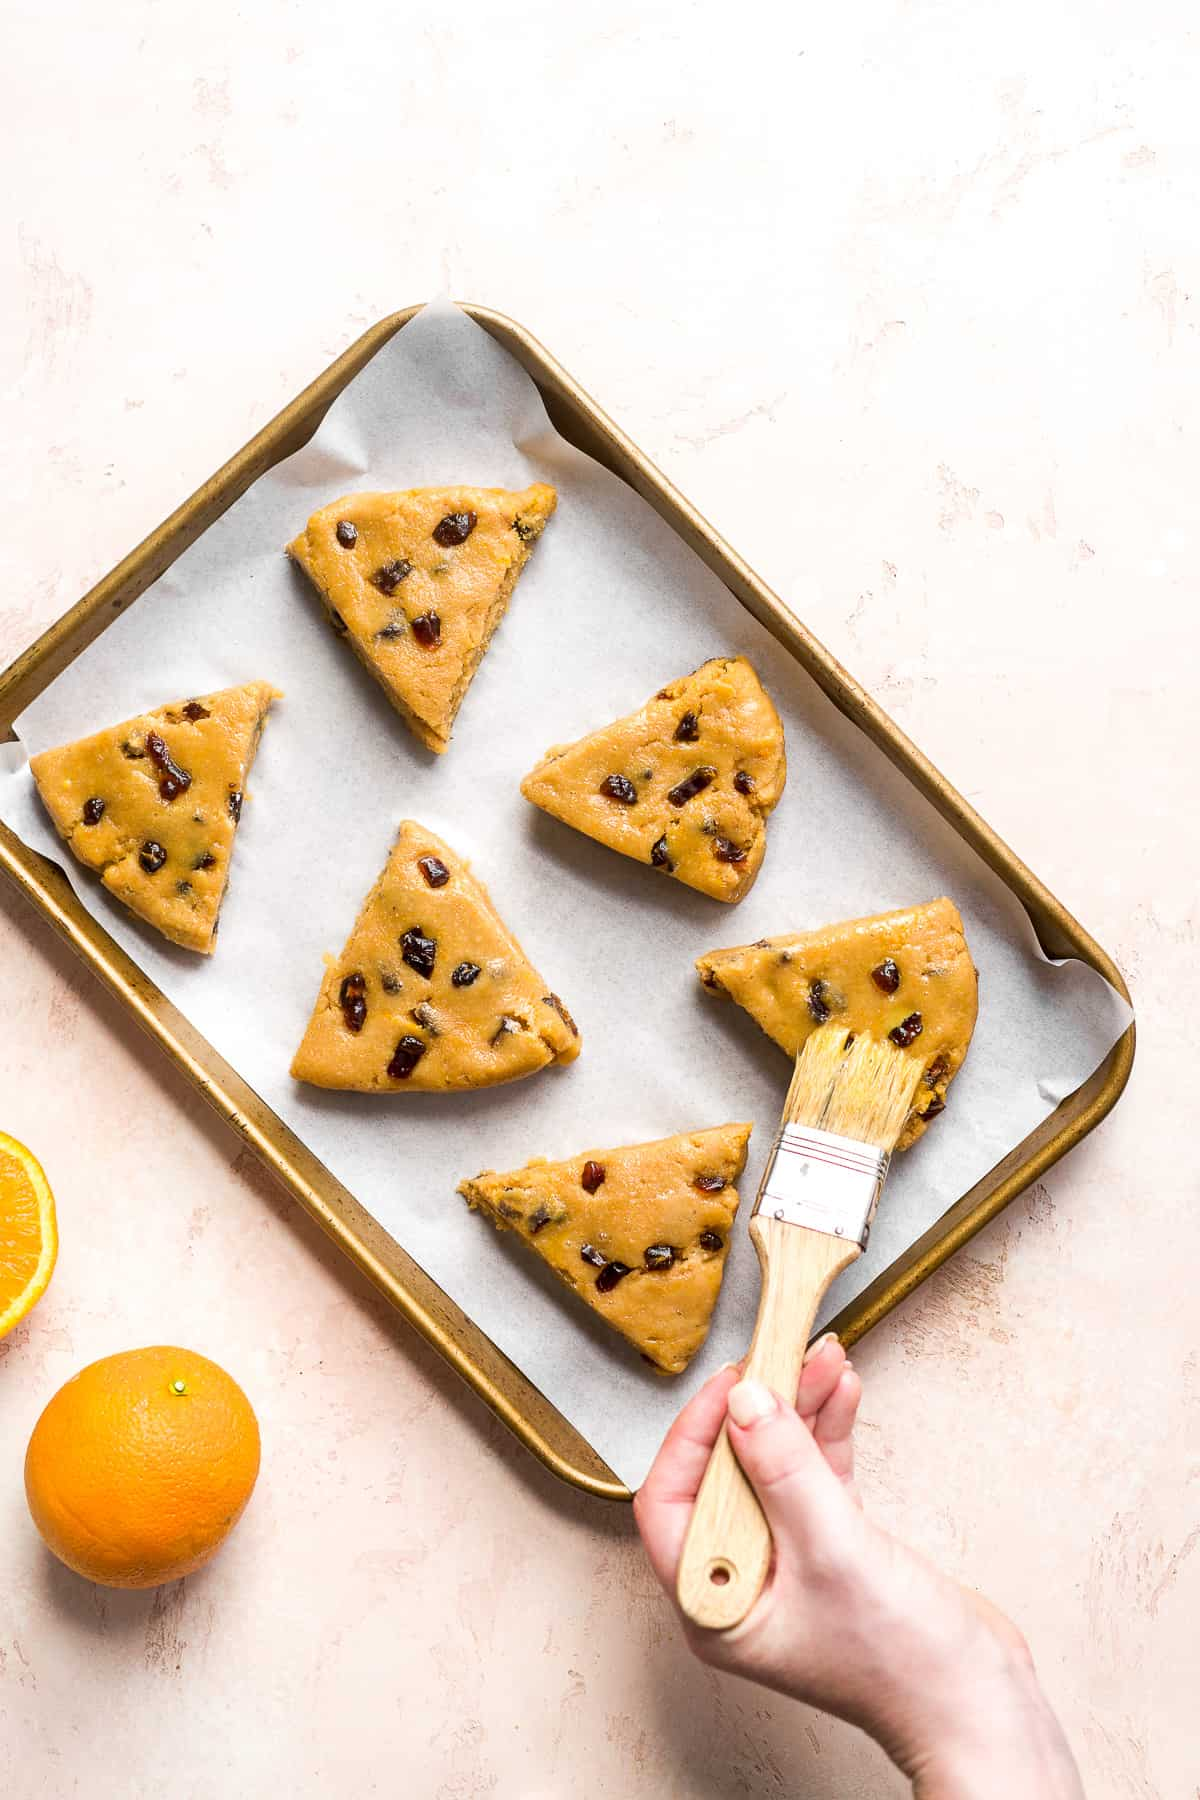 Triangular scones on a baking sheet with hand brushing the tops.